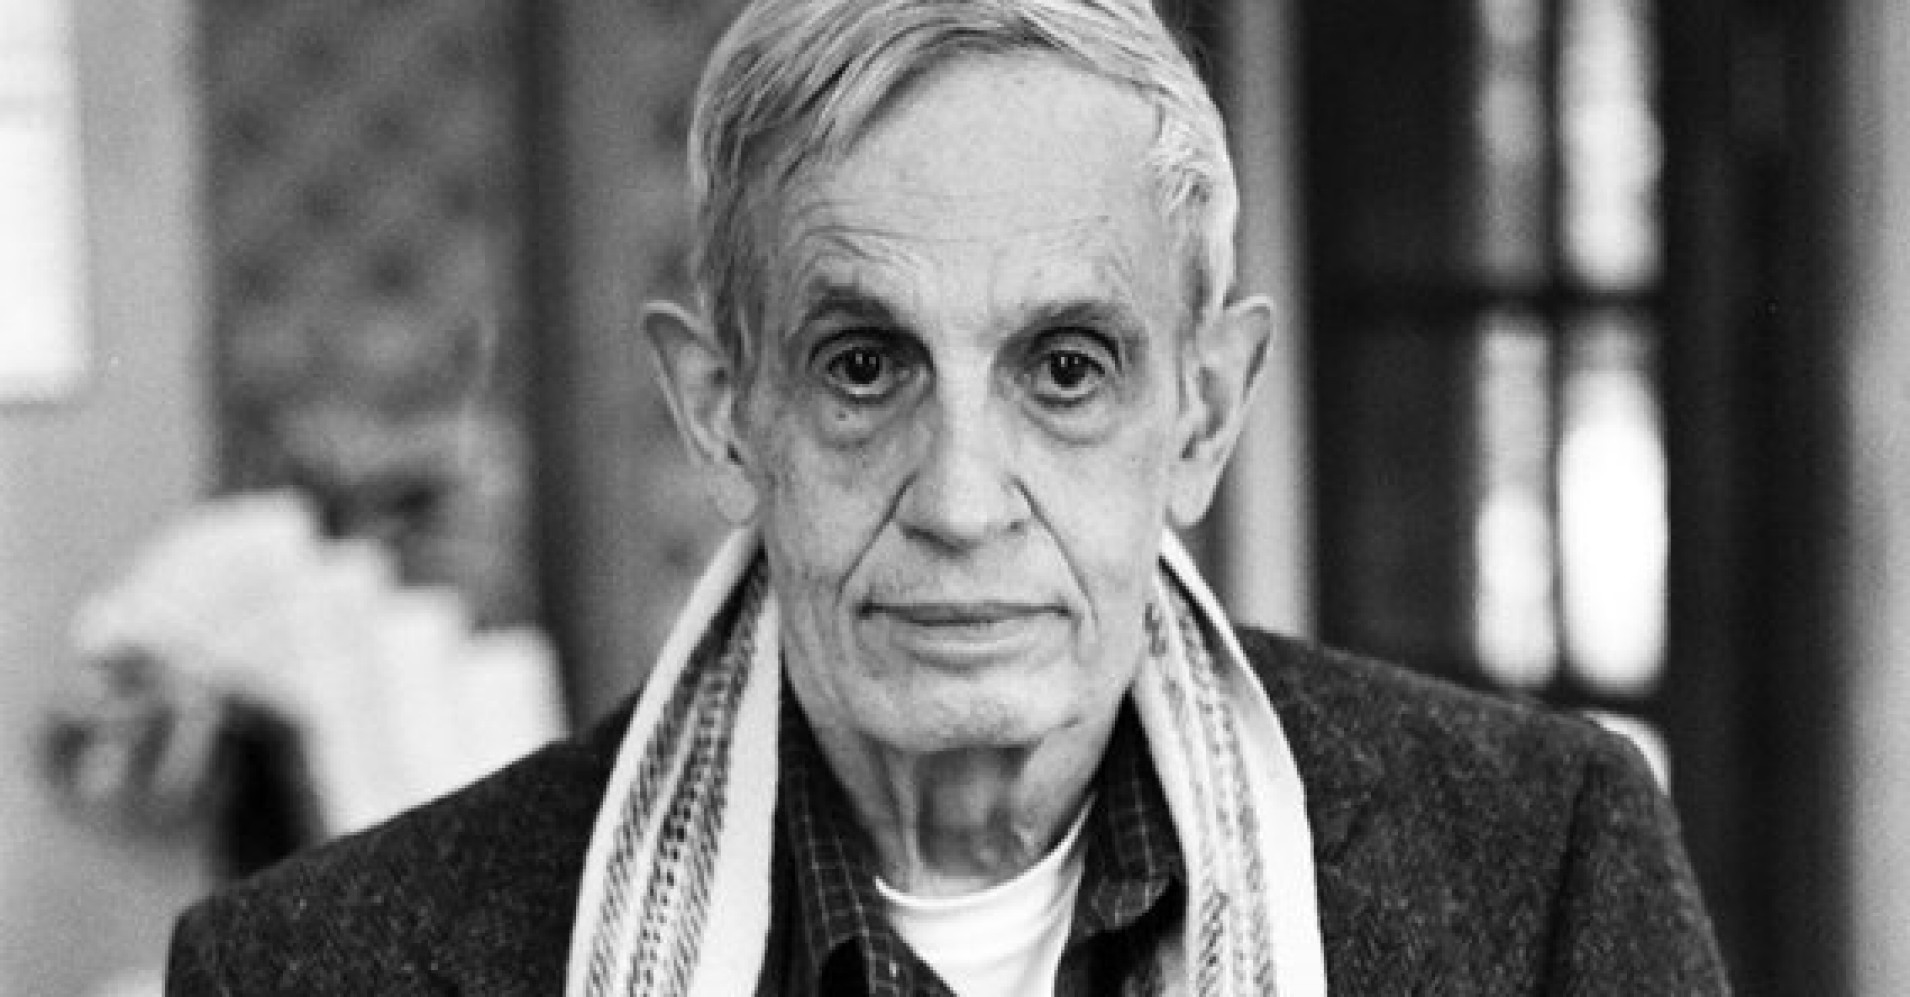 essays about john nash John forbes nash, jr (born june 13, 1928) is an american mathematician whose works in game theory, differential geometry, and partial differential equations have provided insight into the forces that govern chance and events inside complex systems in daily life.